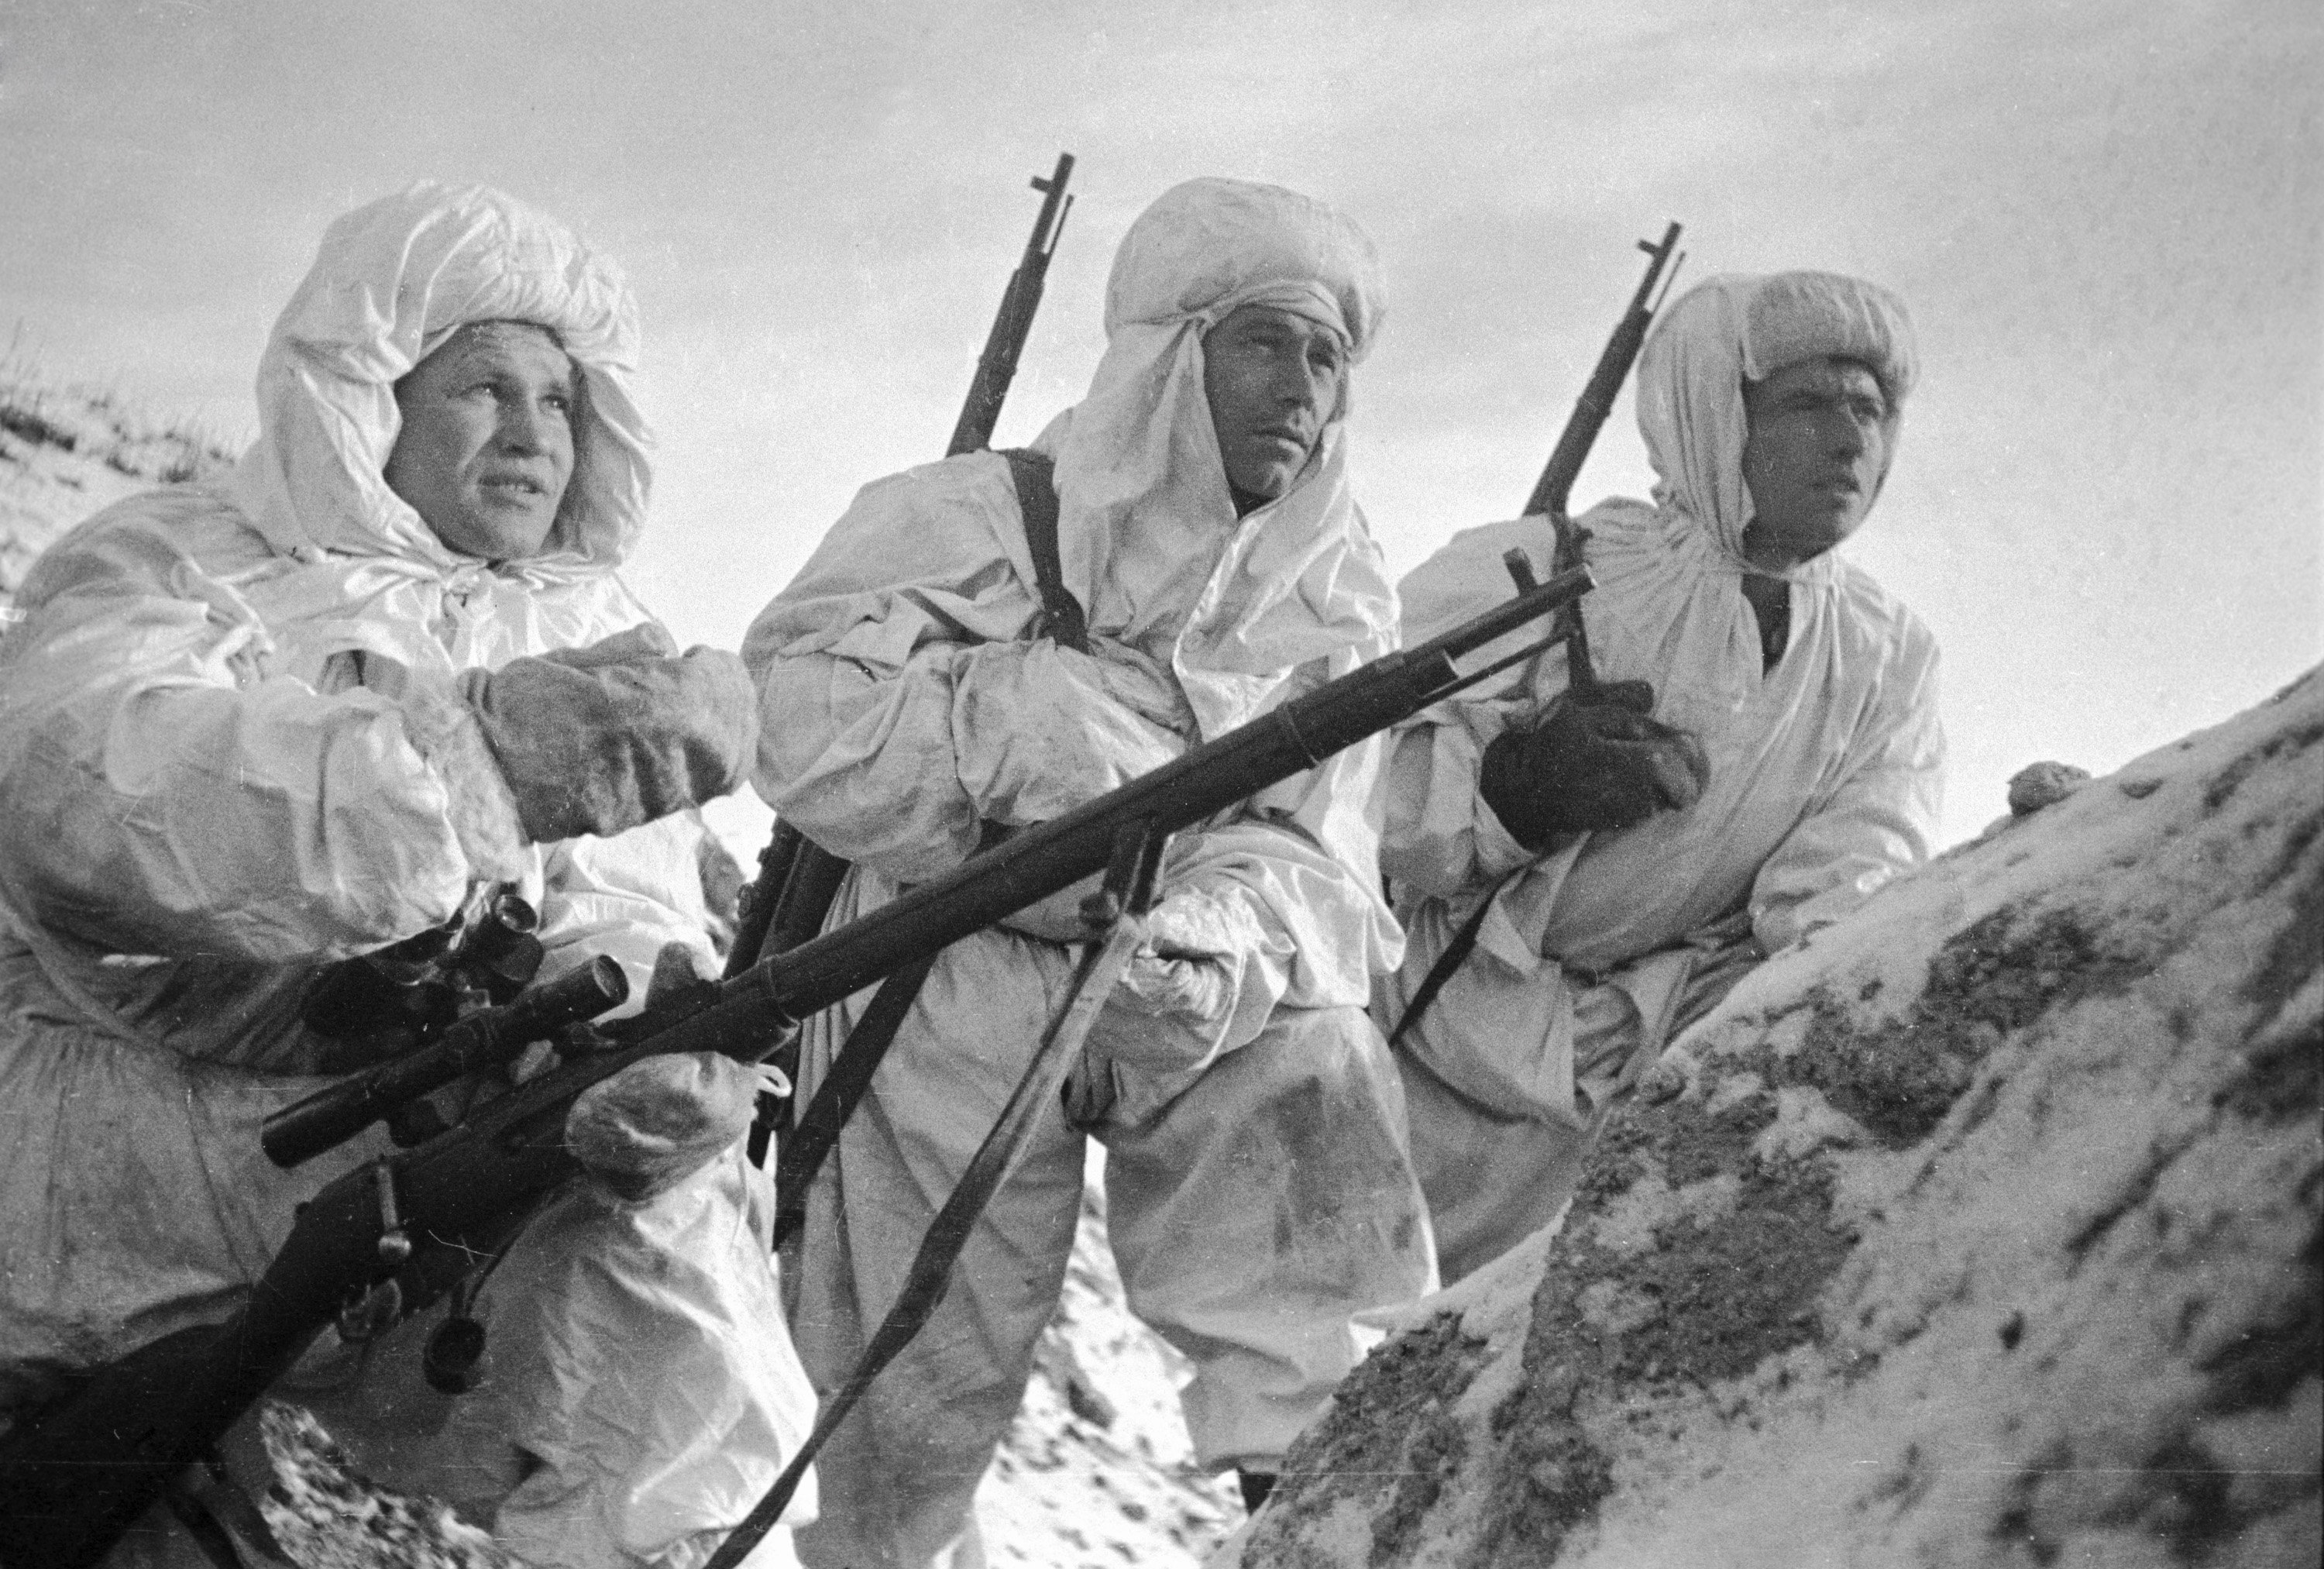 Vasily Grigorievich Zaitsev and his team in Stalingrad (archive photo)